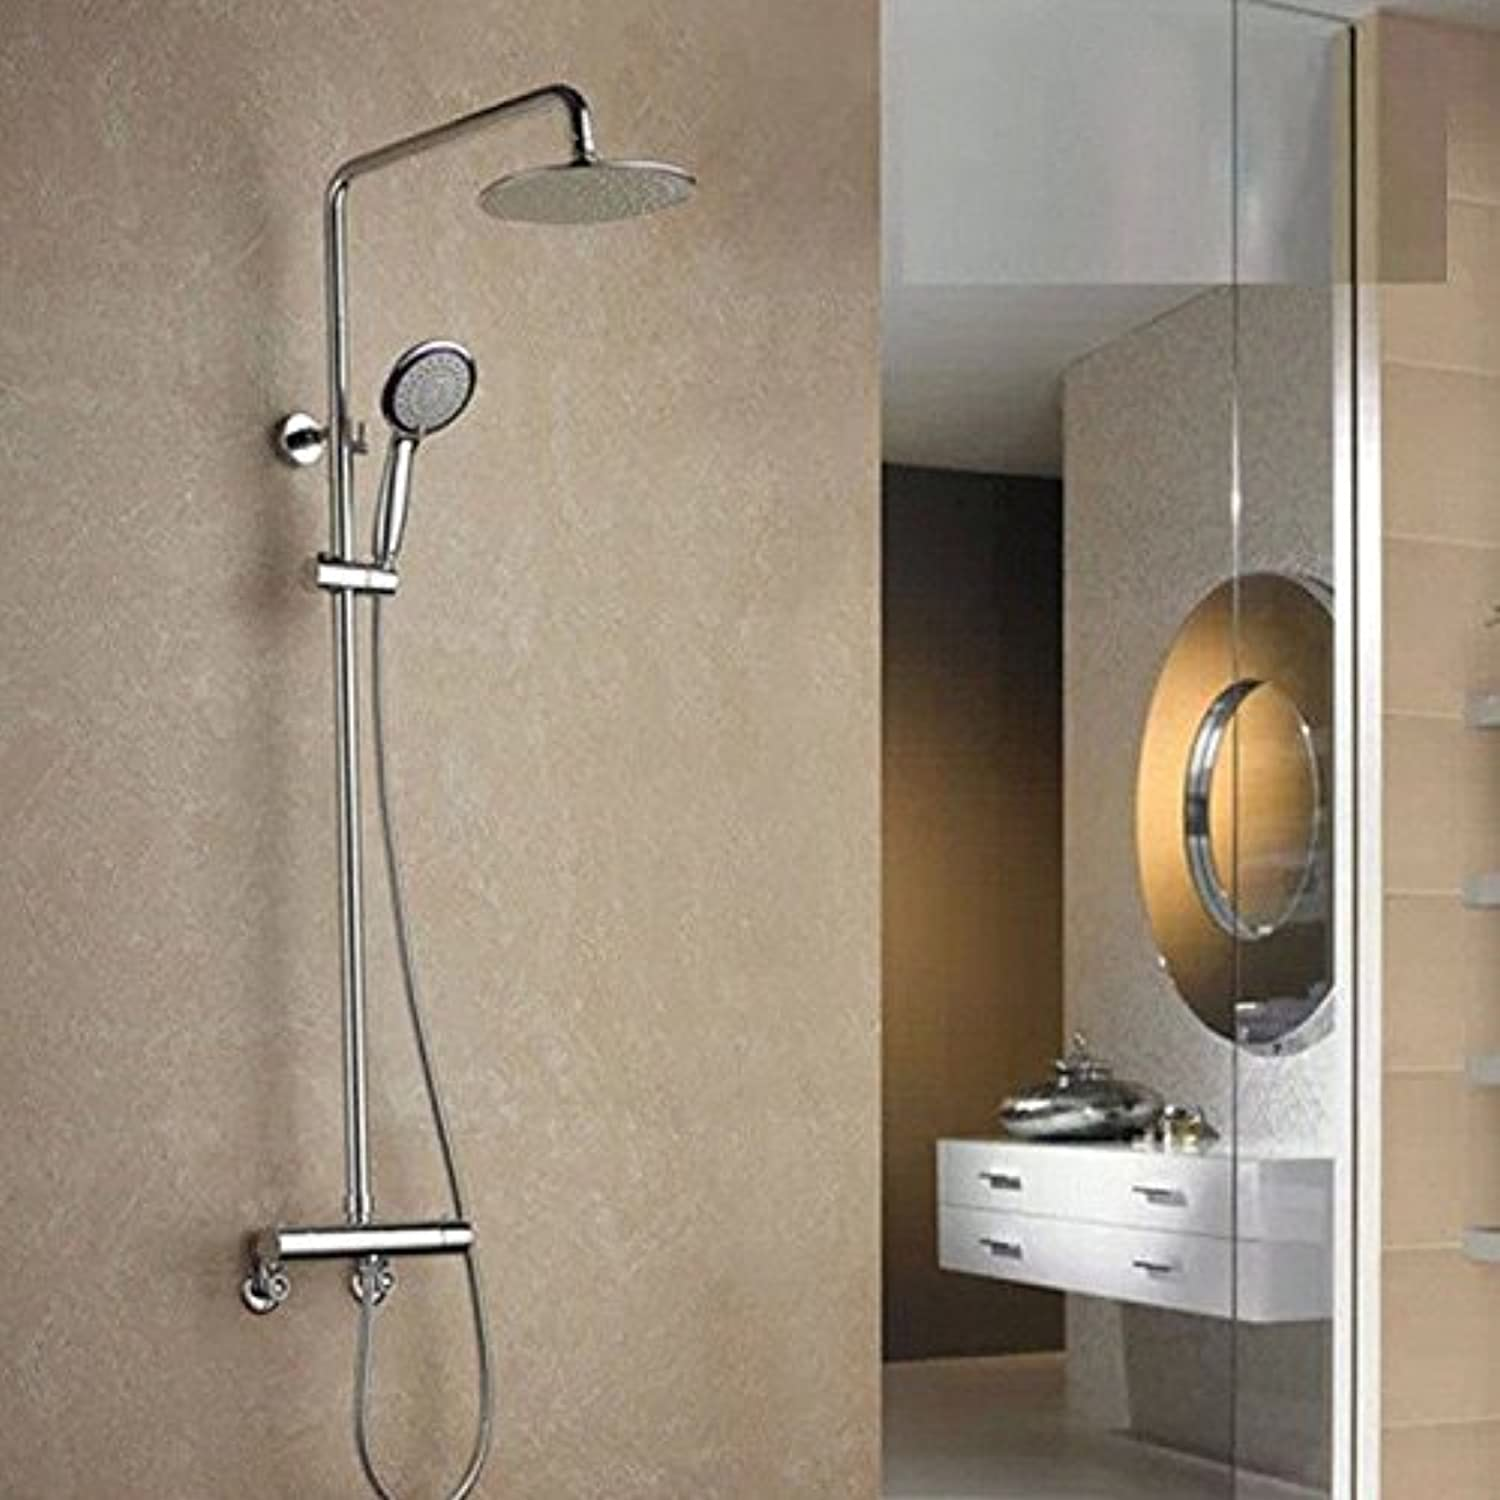 Lalaky Taps Faucet Kitchen Mixer Sink Waterfall Bathroom Mixer Basin Mixer Tap for Kitchen Bathroom and Washroom 38 Degree Thermostatic Shower